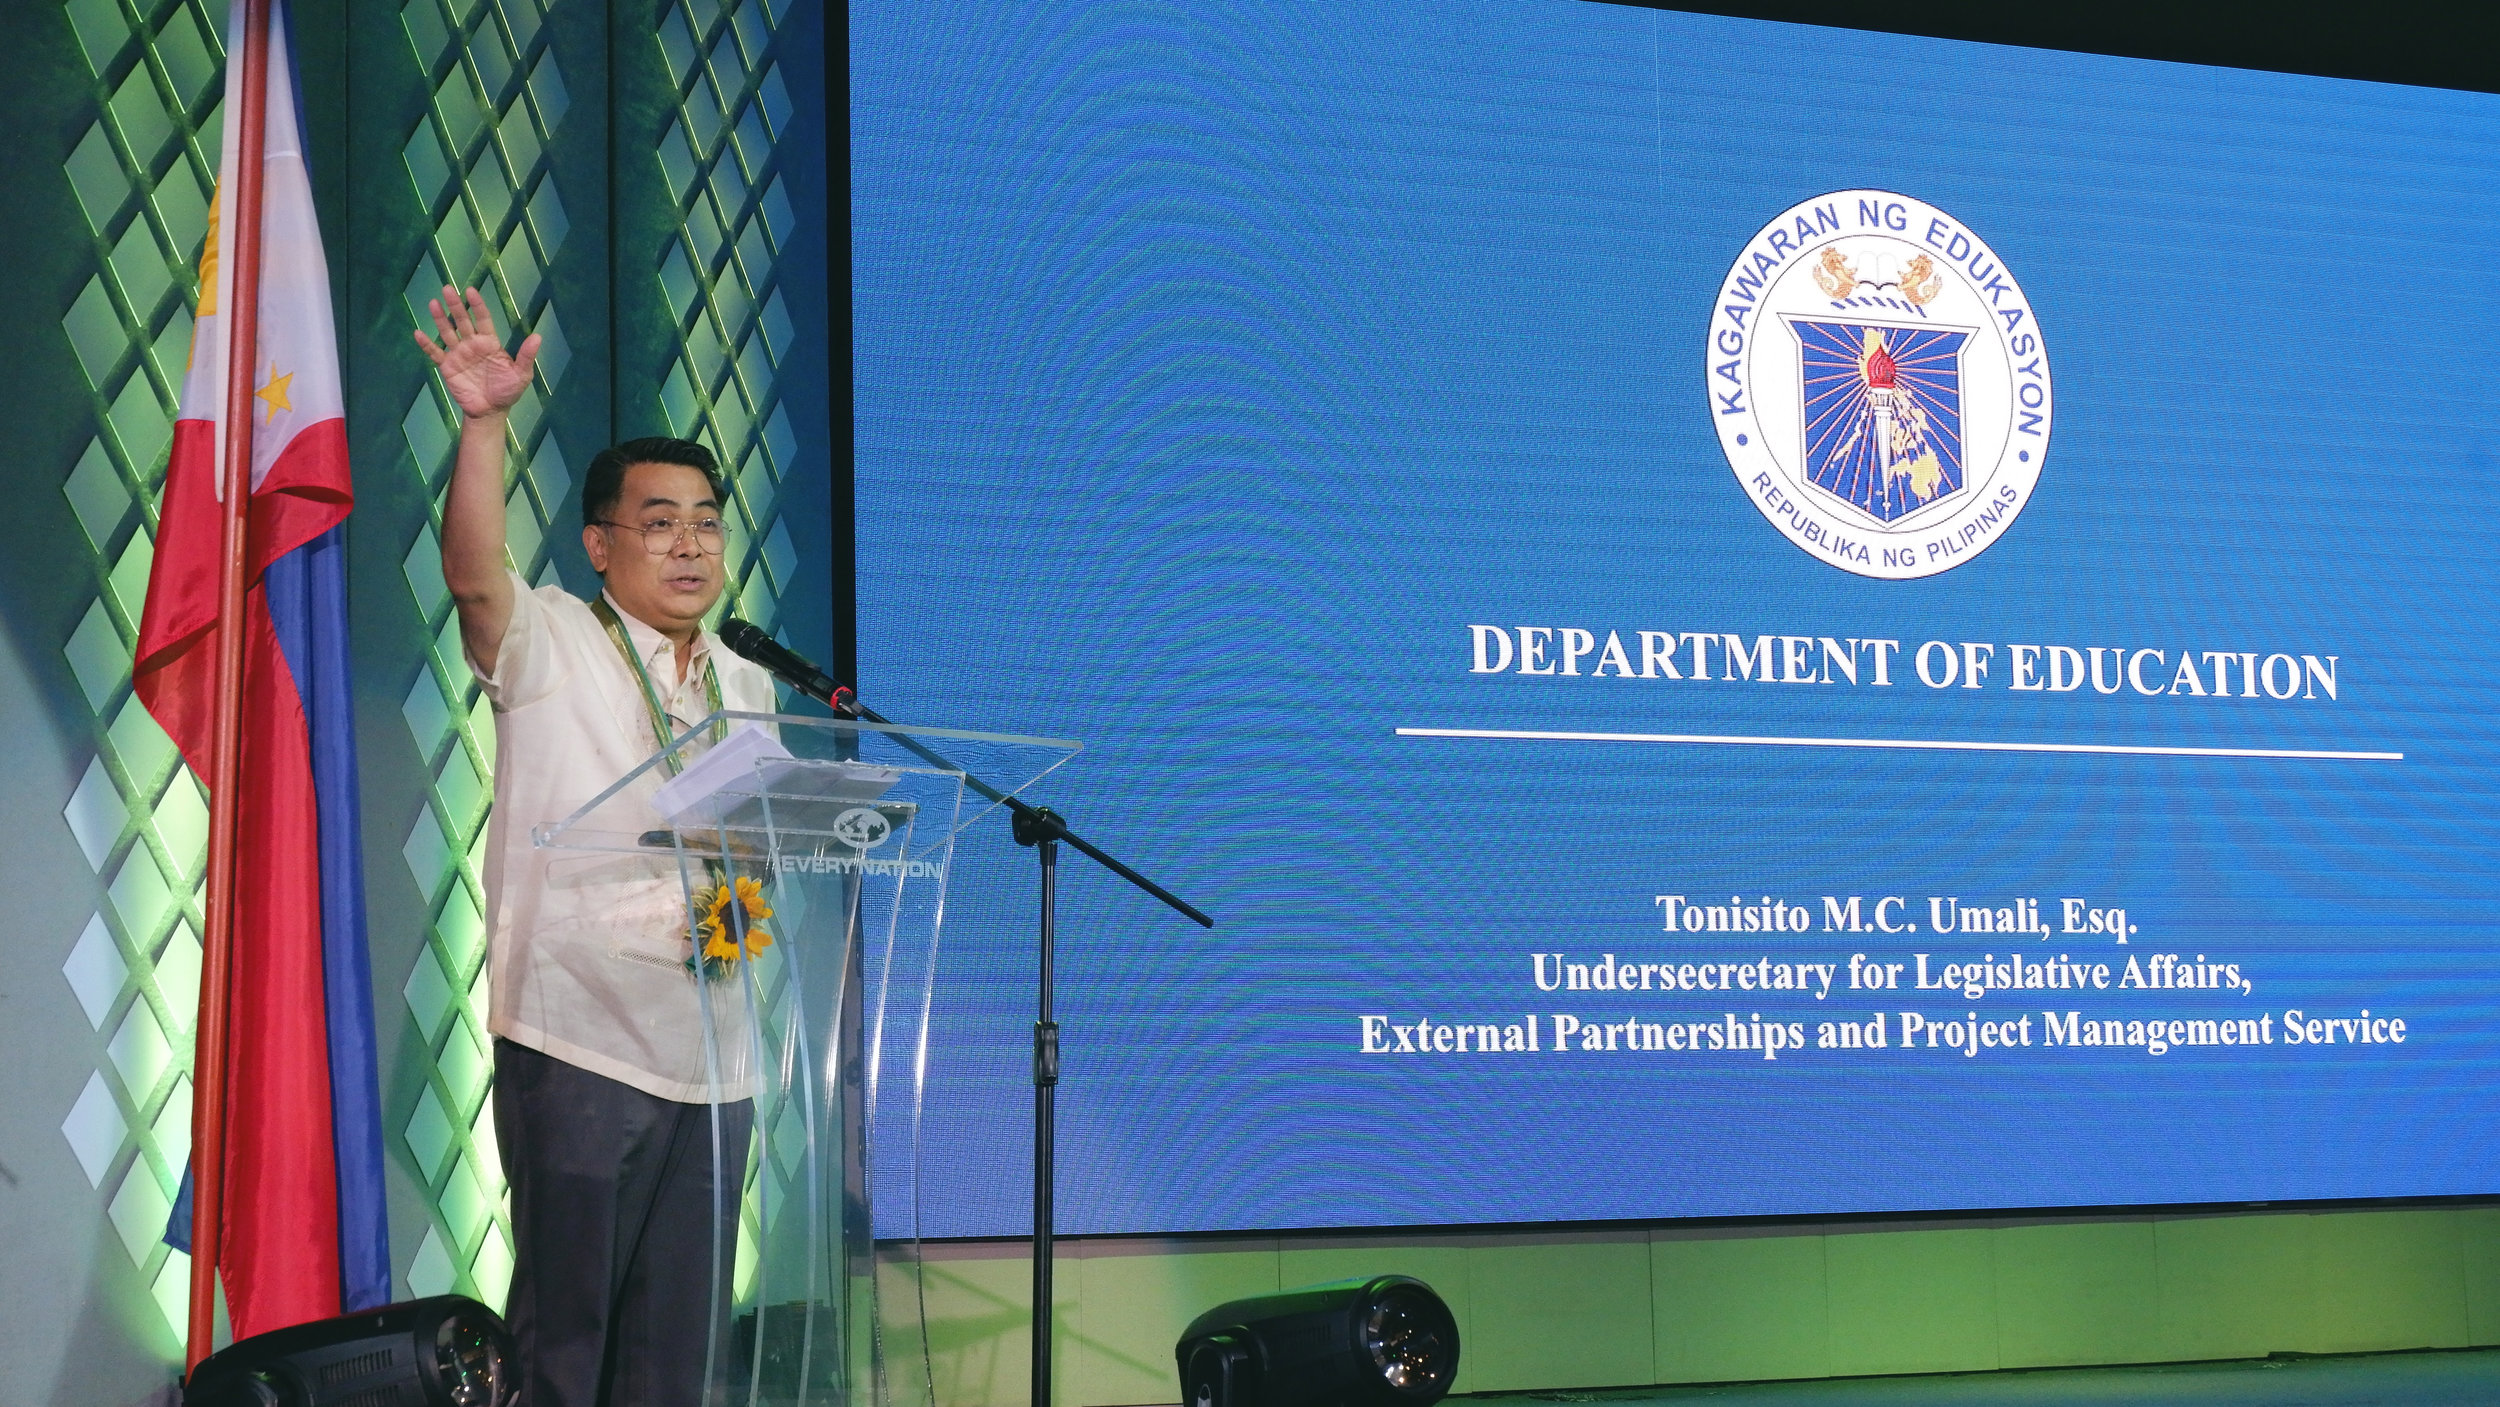 Usec. Tonisito Umali explaining the mandate of the Philippine Constitution to make quality education accessible to all Filipino students. He shared how DepEd has been building external partnerships through the years to make this possible. He also announced DepEd's partnership with Real LIFE and encouraged the schools to partner with the foundation as well.